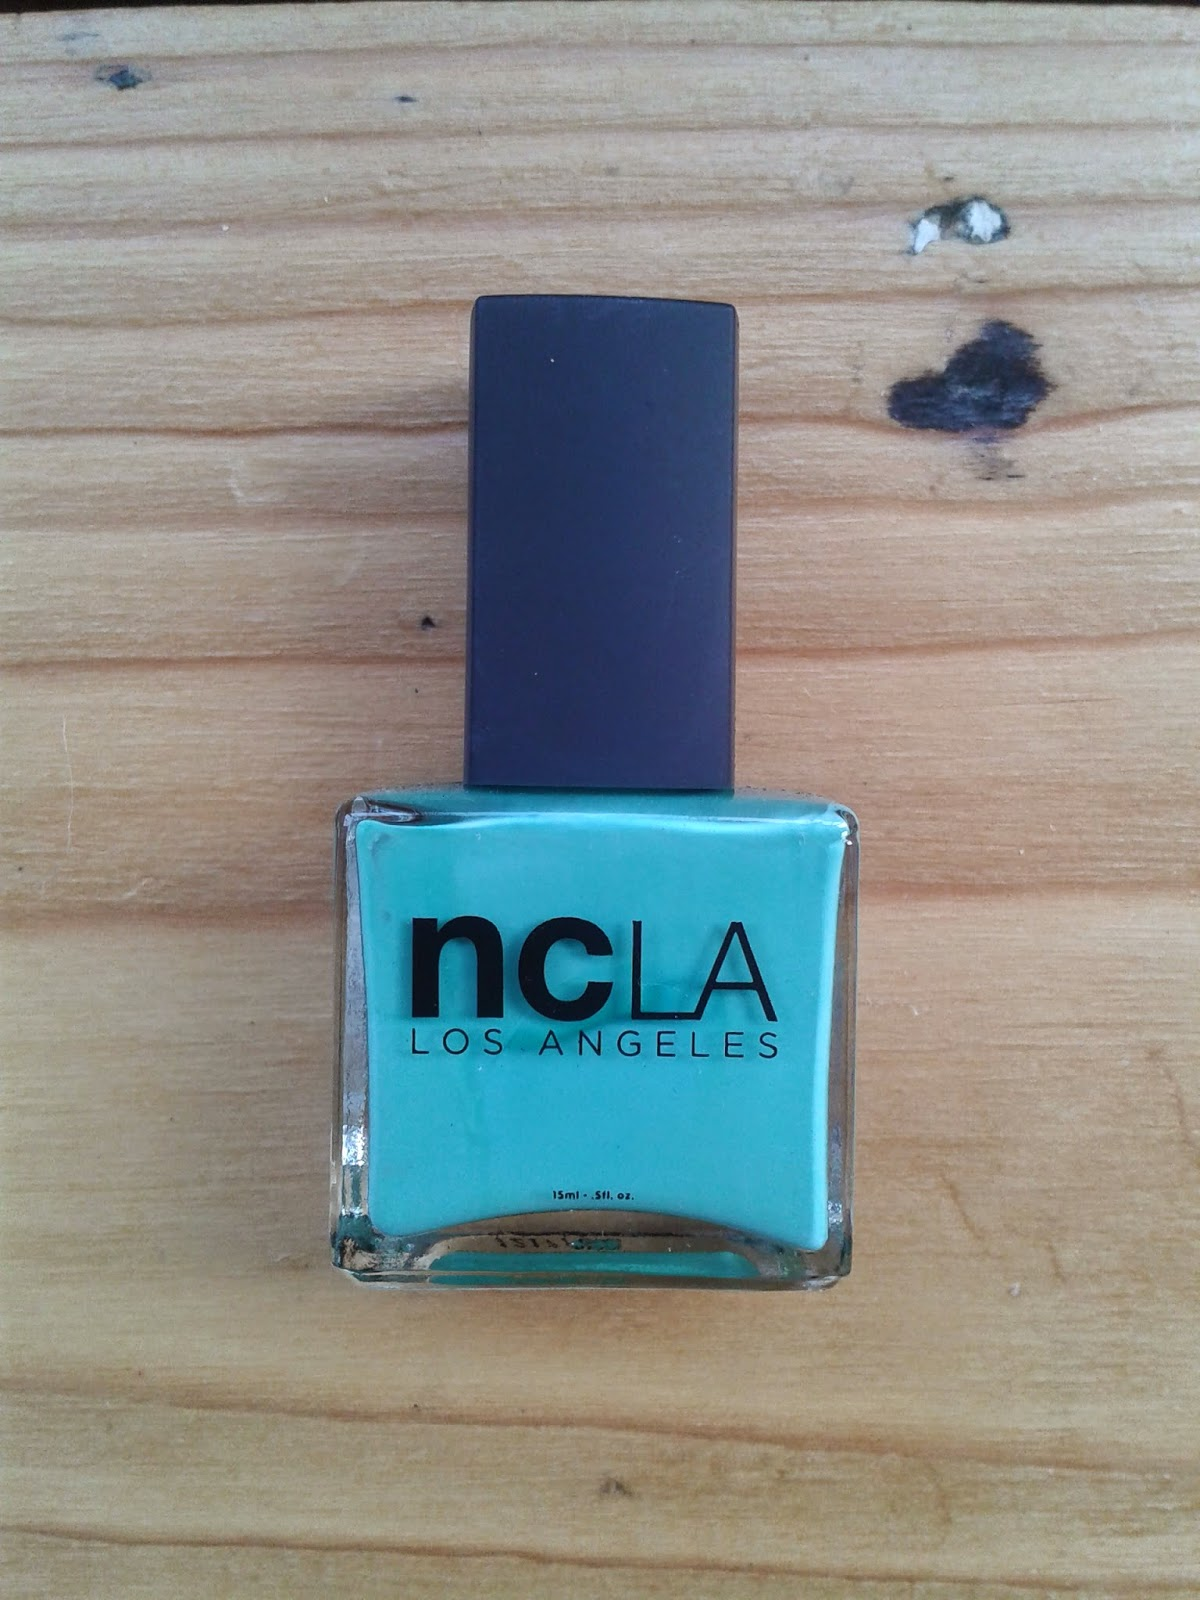 ncLA Nail Varnish in Santa Monica Shore Thing